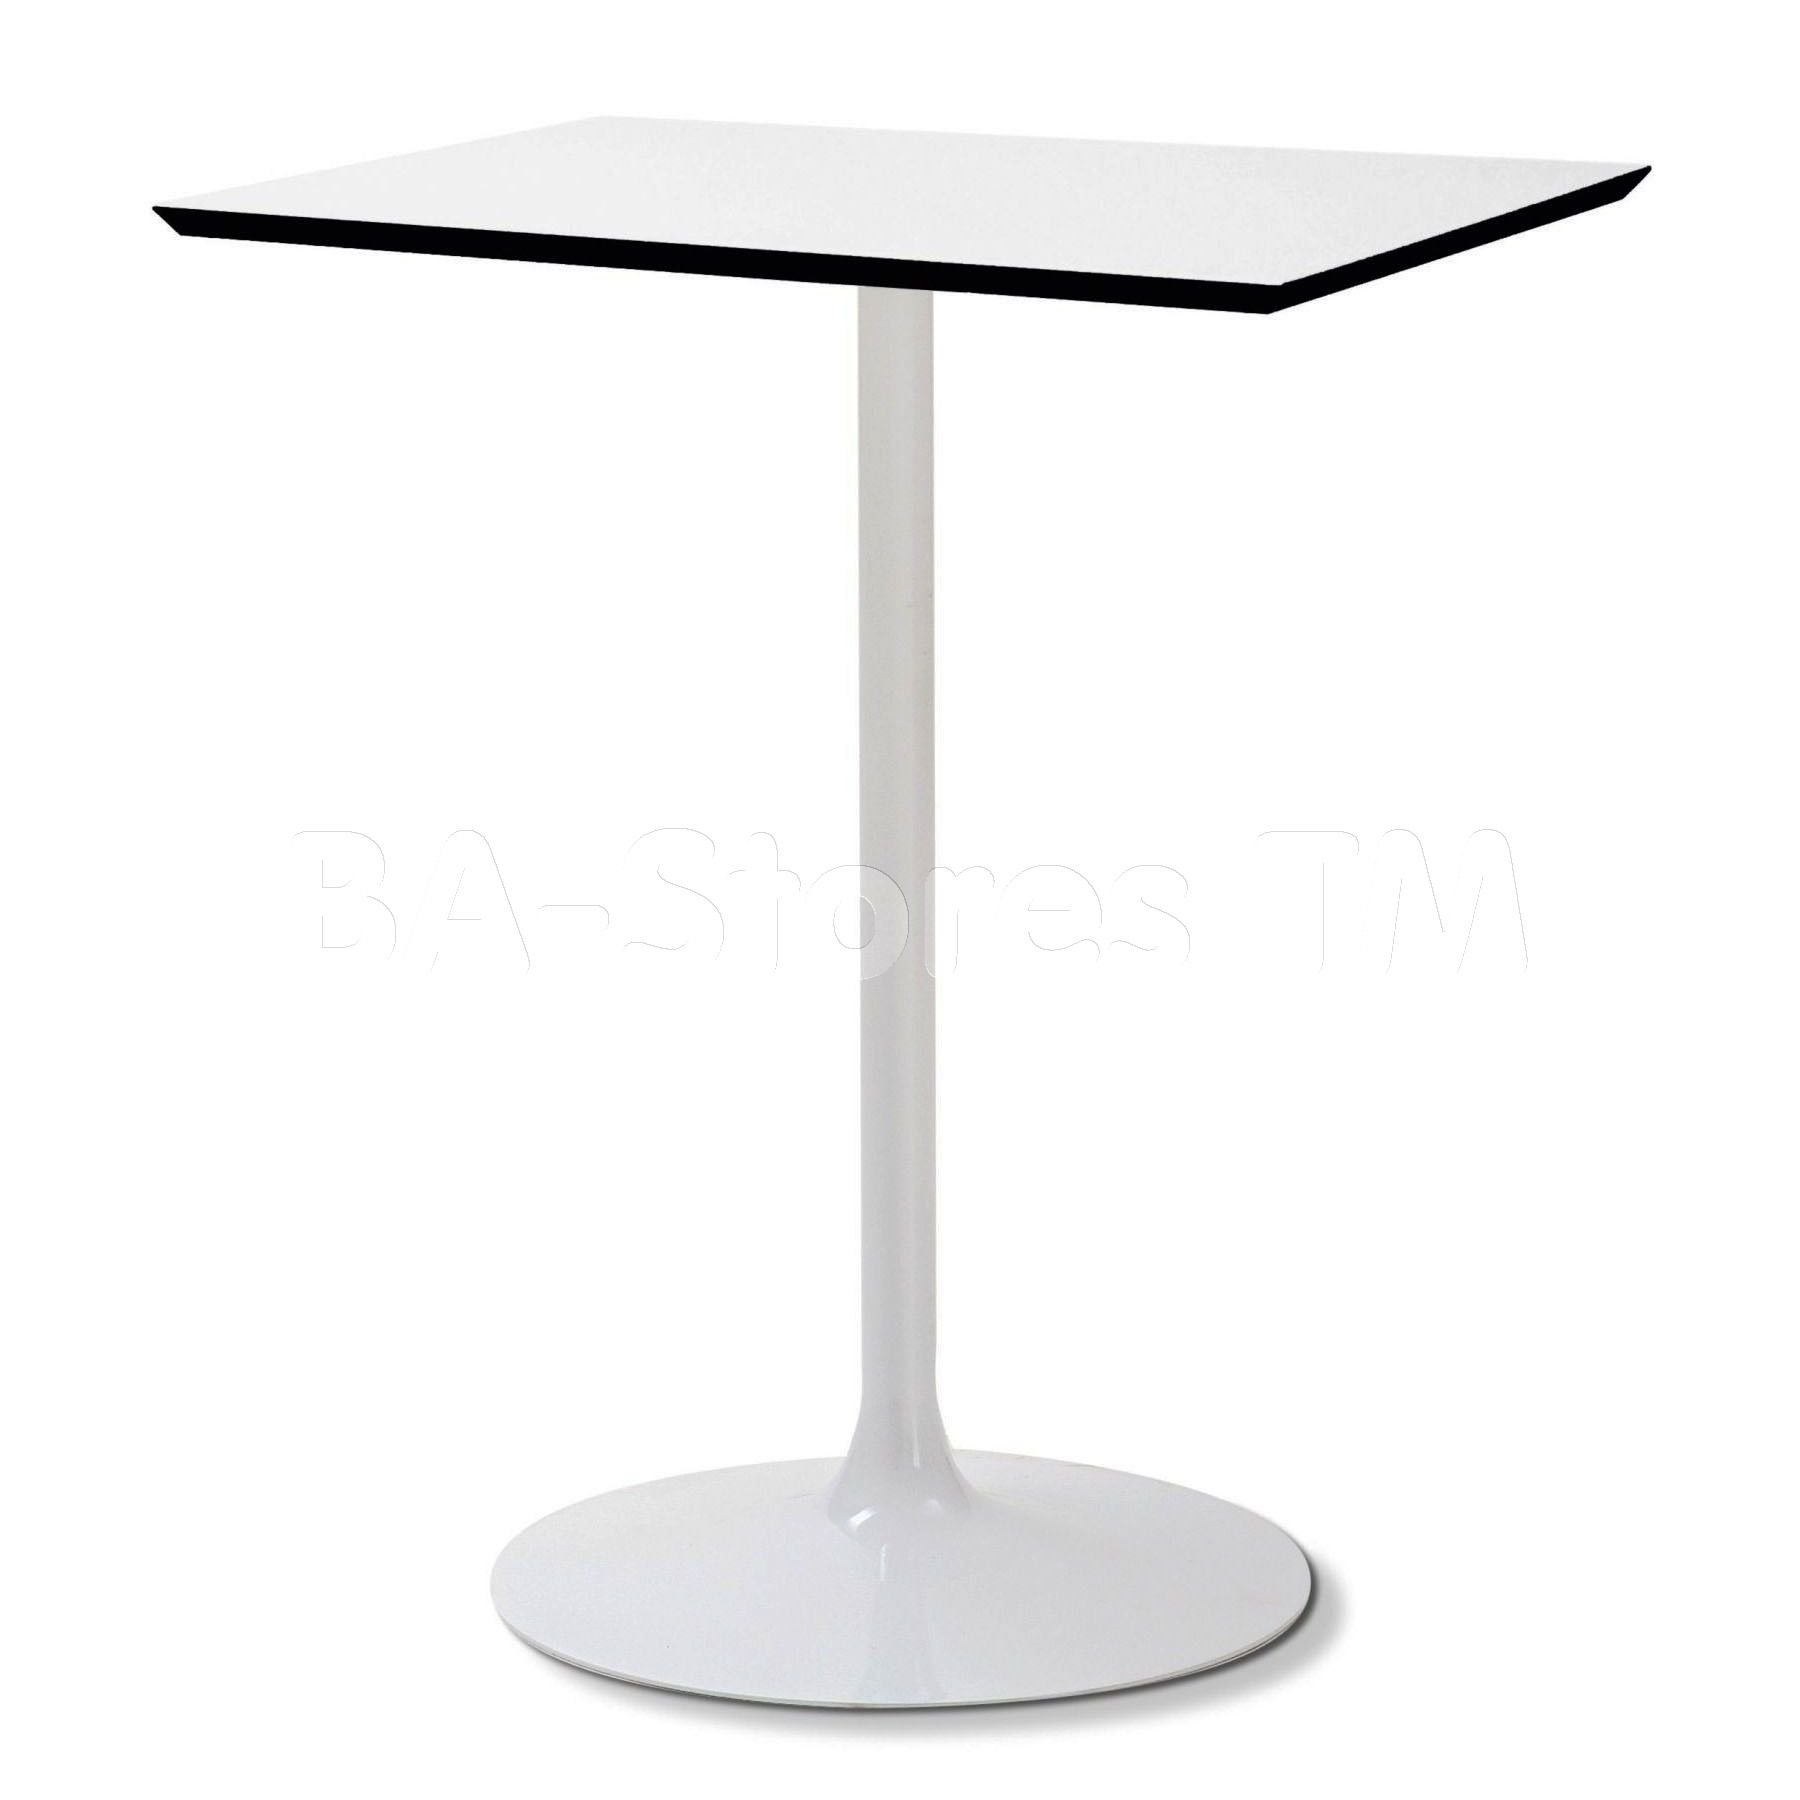 Largest Dining Tables collection: Suitable for outdoor use, Crown-Q Square  Kitchen Dining Table is square table with lacquered steel frame and White  high ...